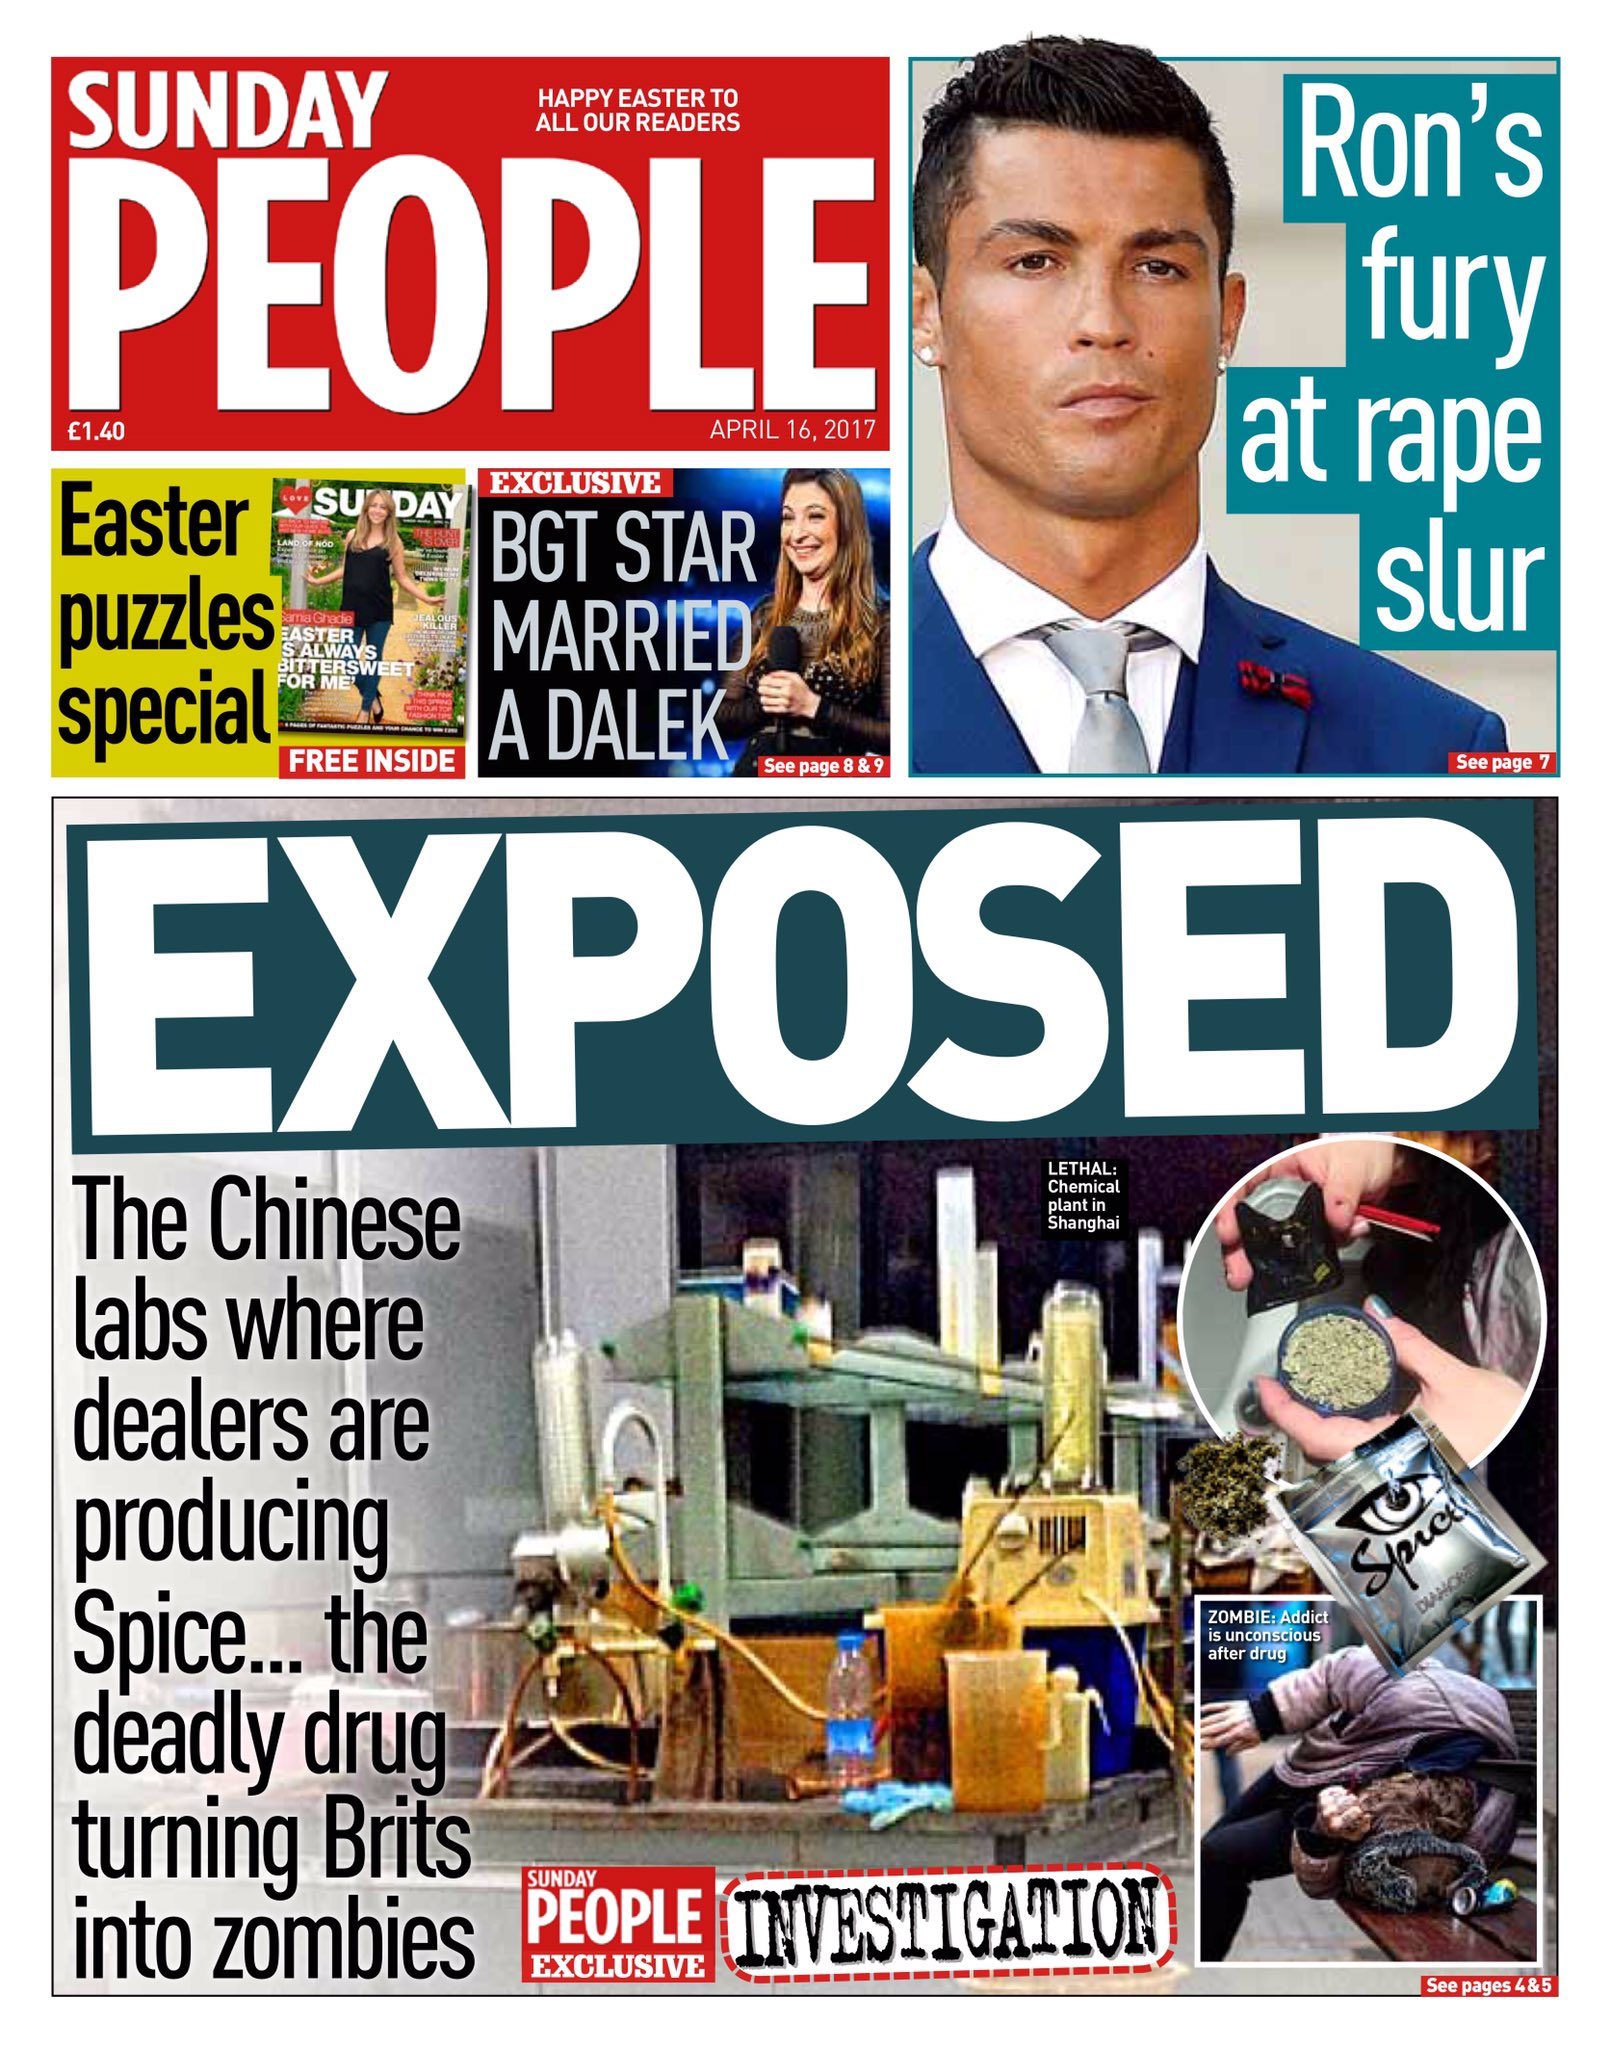 RT @hendopolis: PEOPLE: Exposed #tomorrowspaperstoday #spice https://t.co/W8PHKbe454